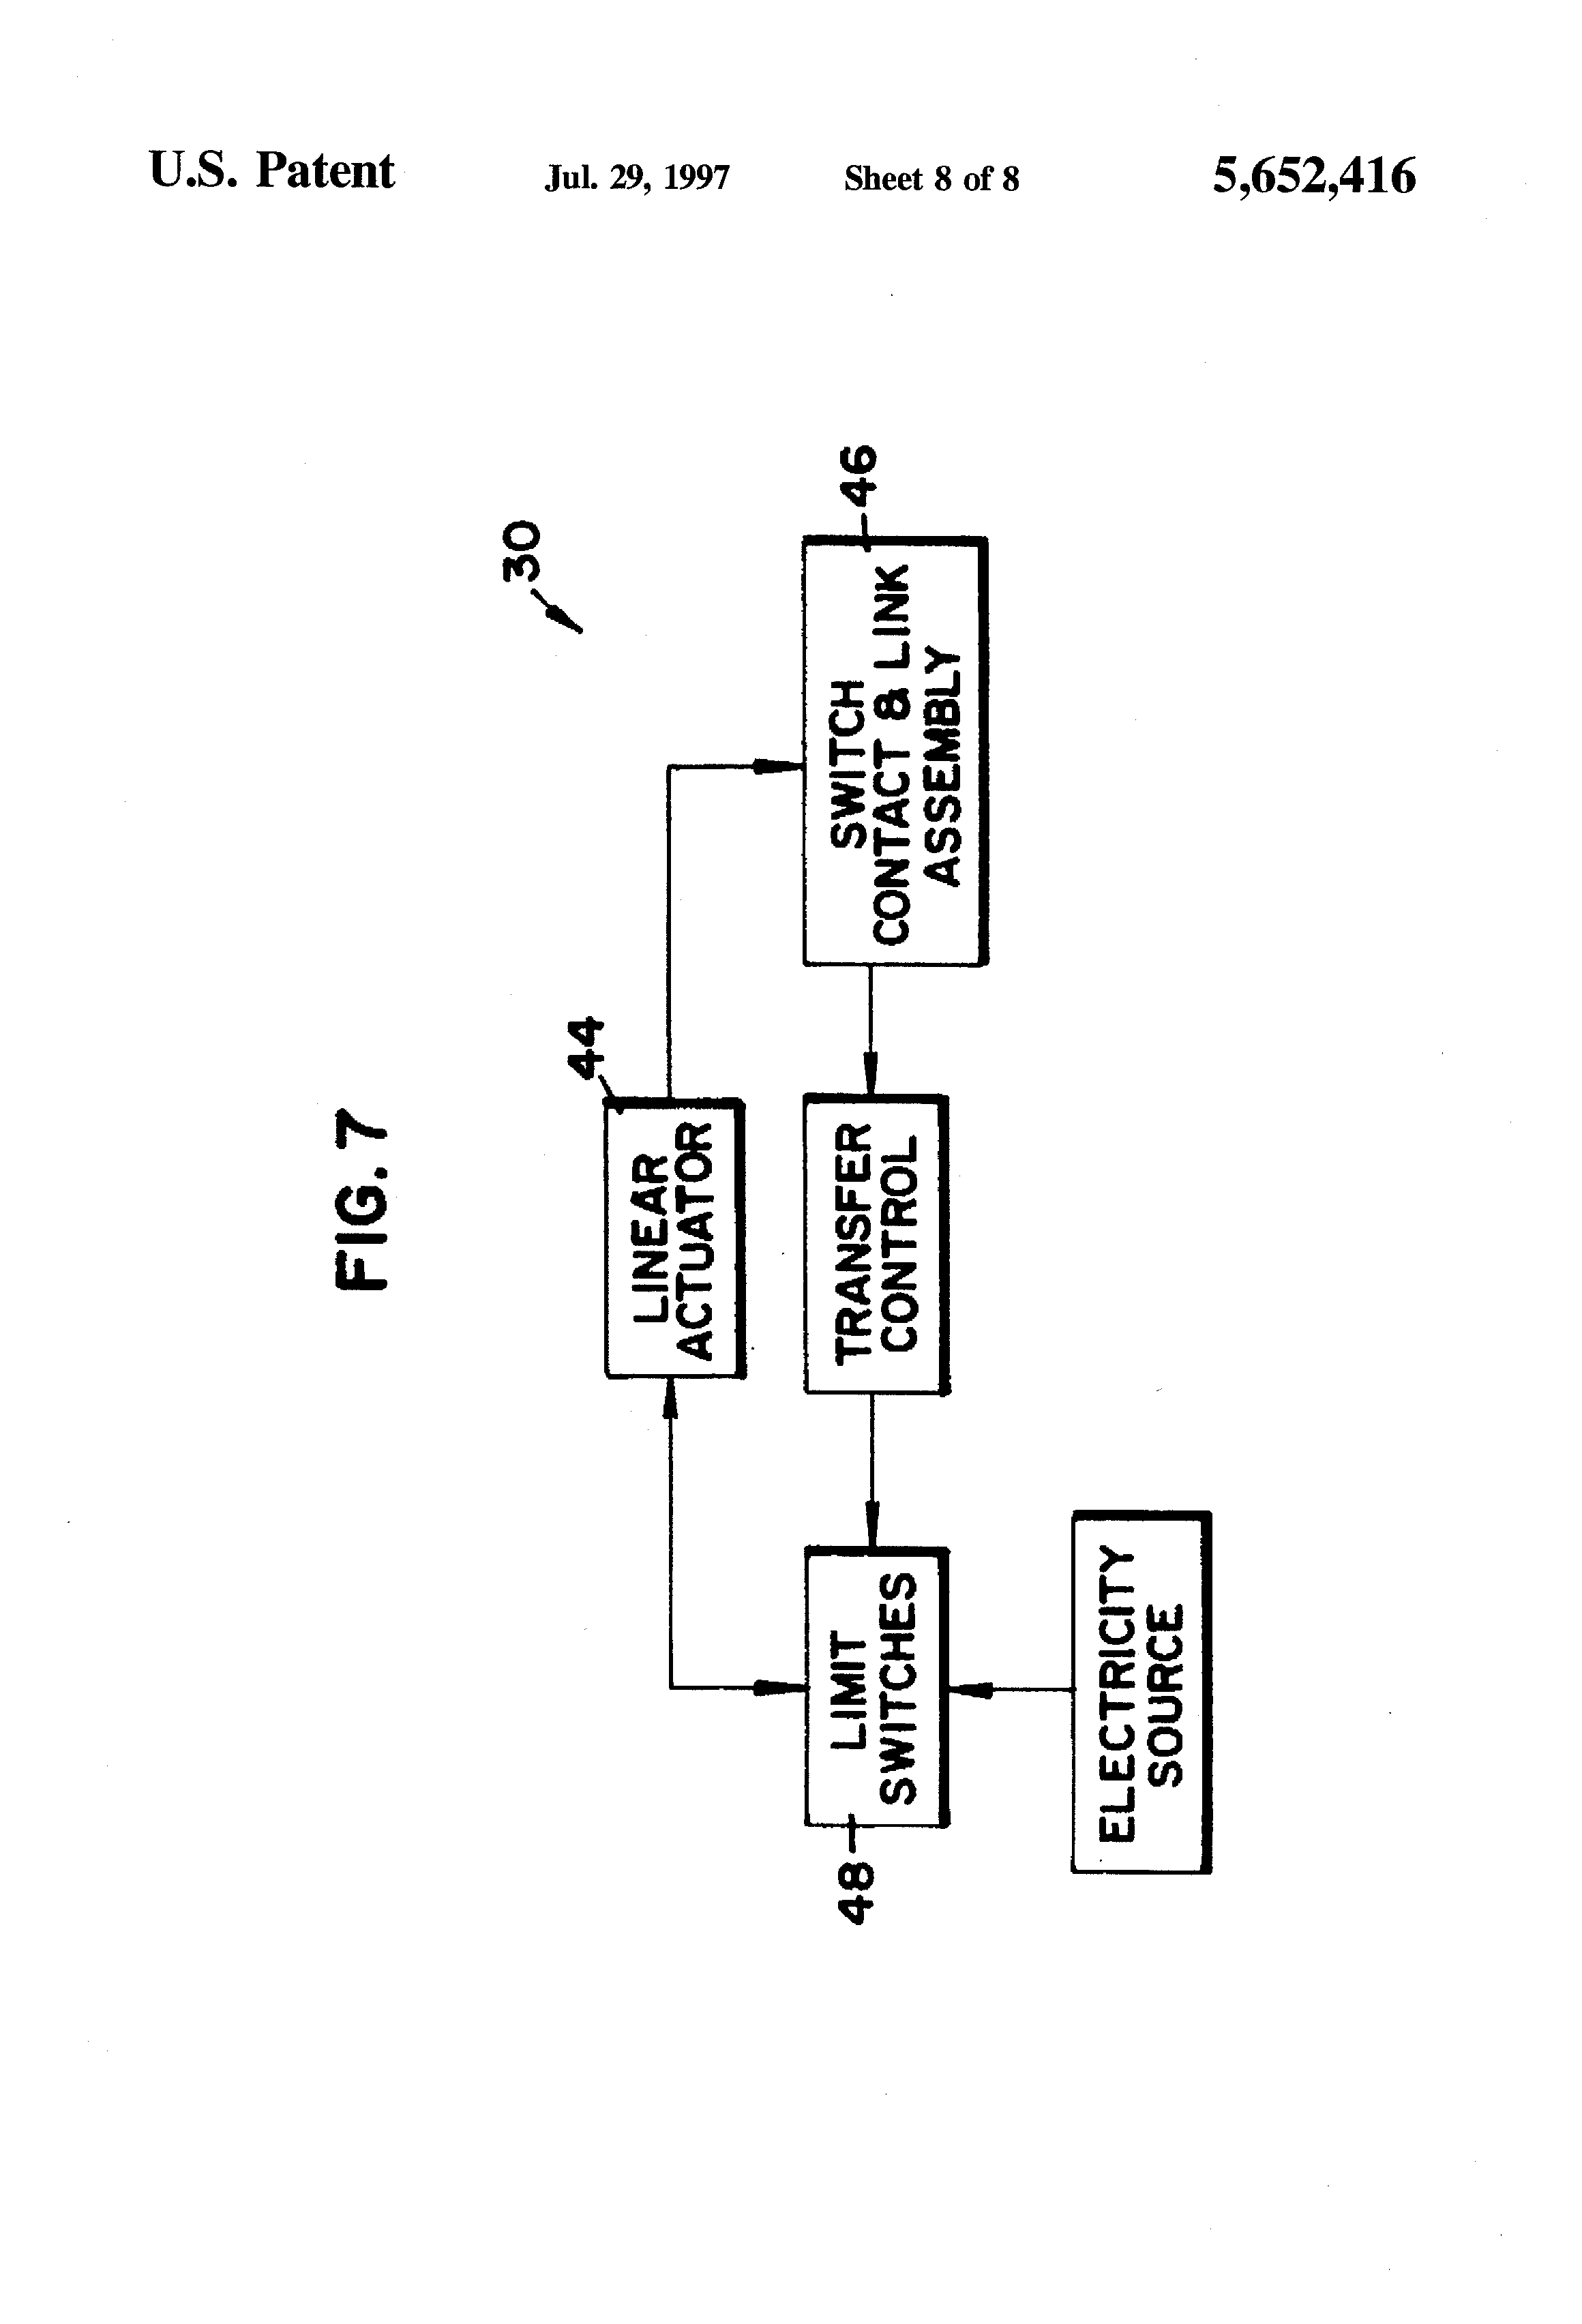 Patent Us5652416 Mechanically Held Electrically Or Manually Limit Switch Schematic Drawing